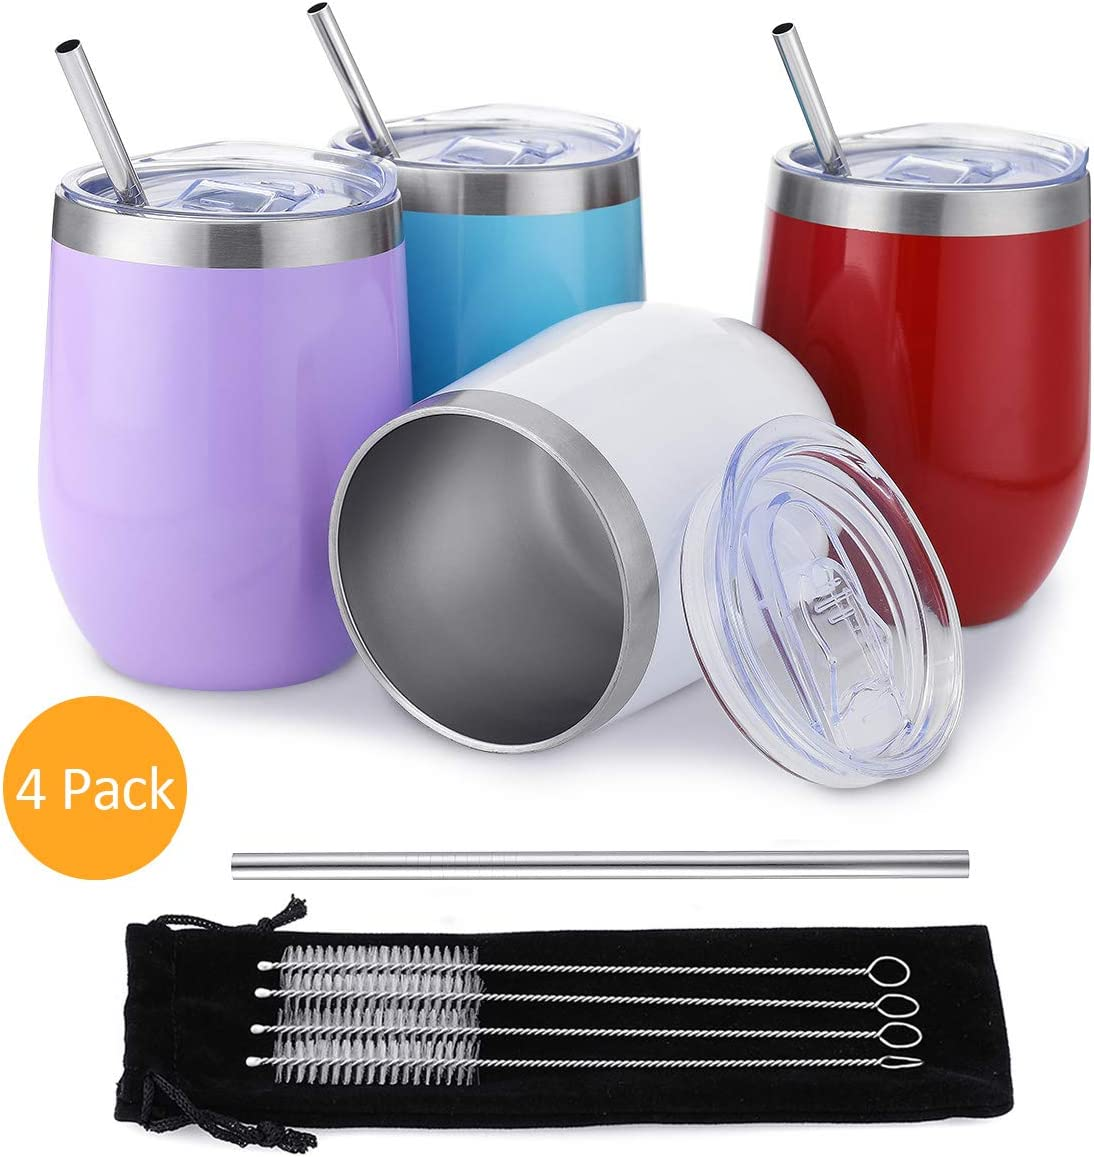 Comfook 4 Pack 12OZ Stainless Steel Wine Tumbler, Stemless vacuum Insulated Wine Glasses with Straws Set and Spill Proof Lid for Parties, Bars,Home, Work, Travel